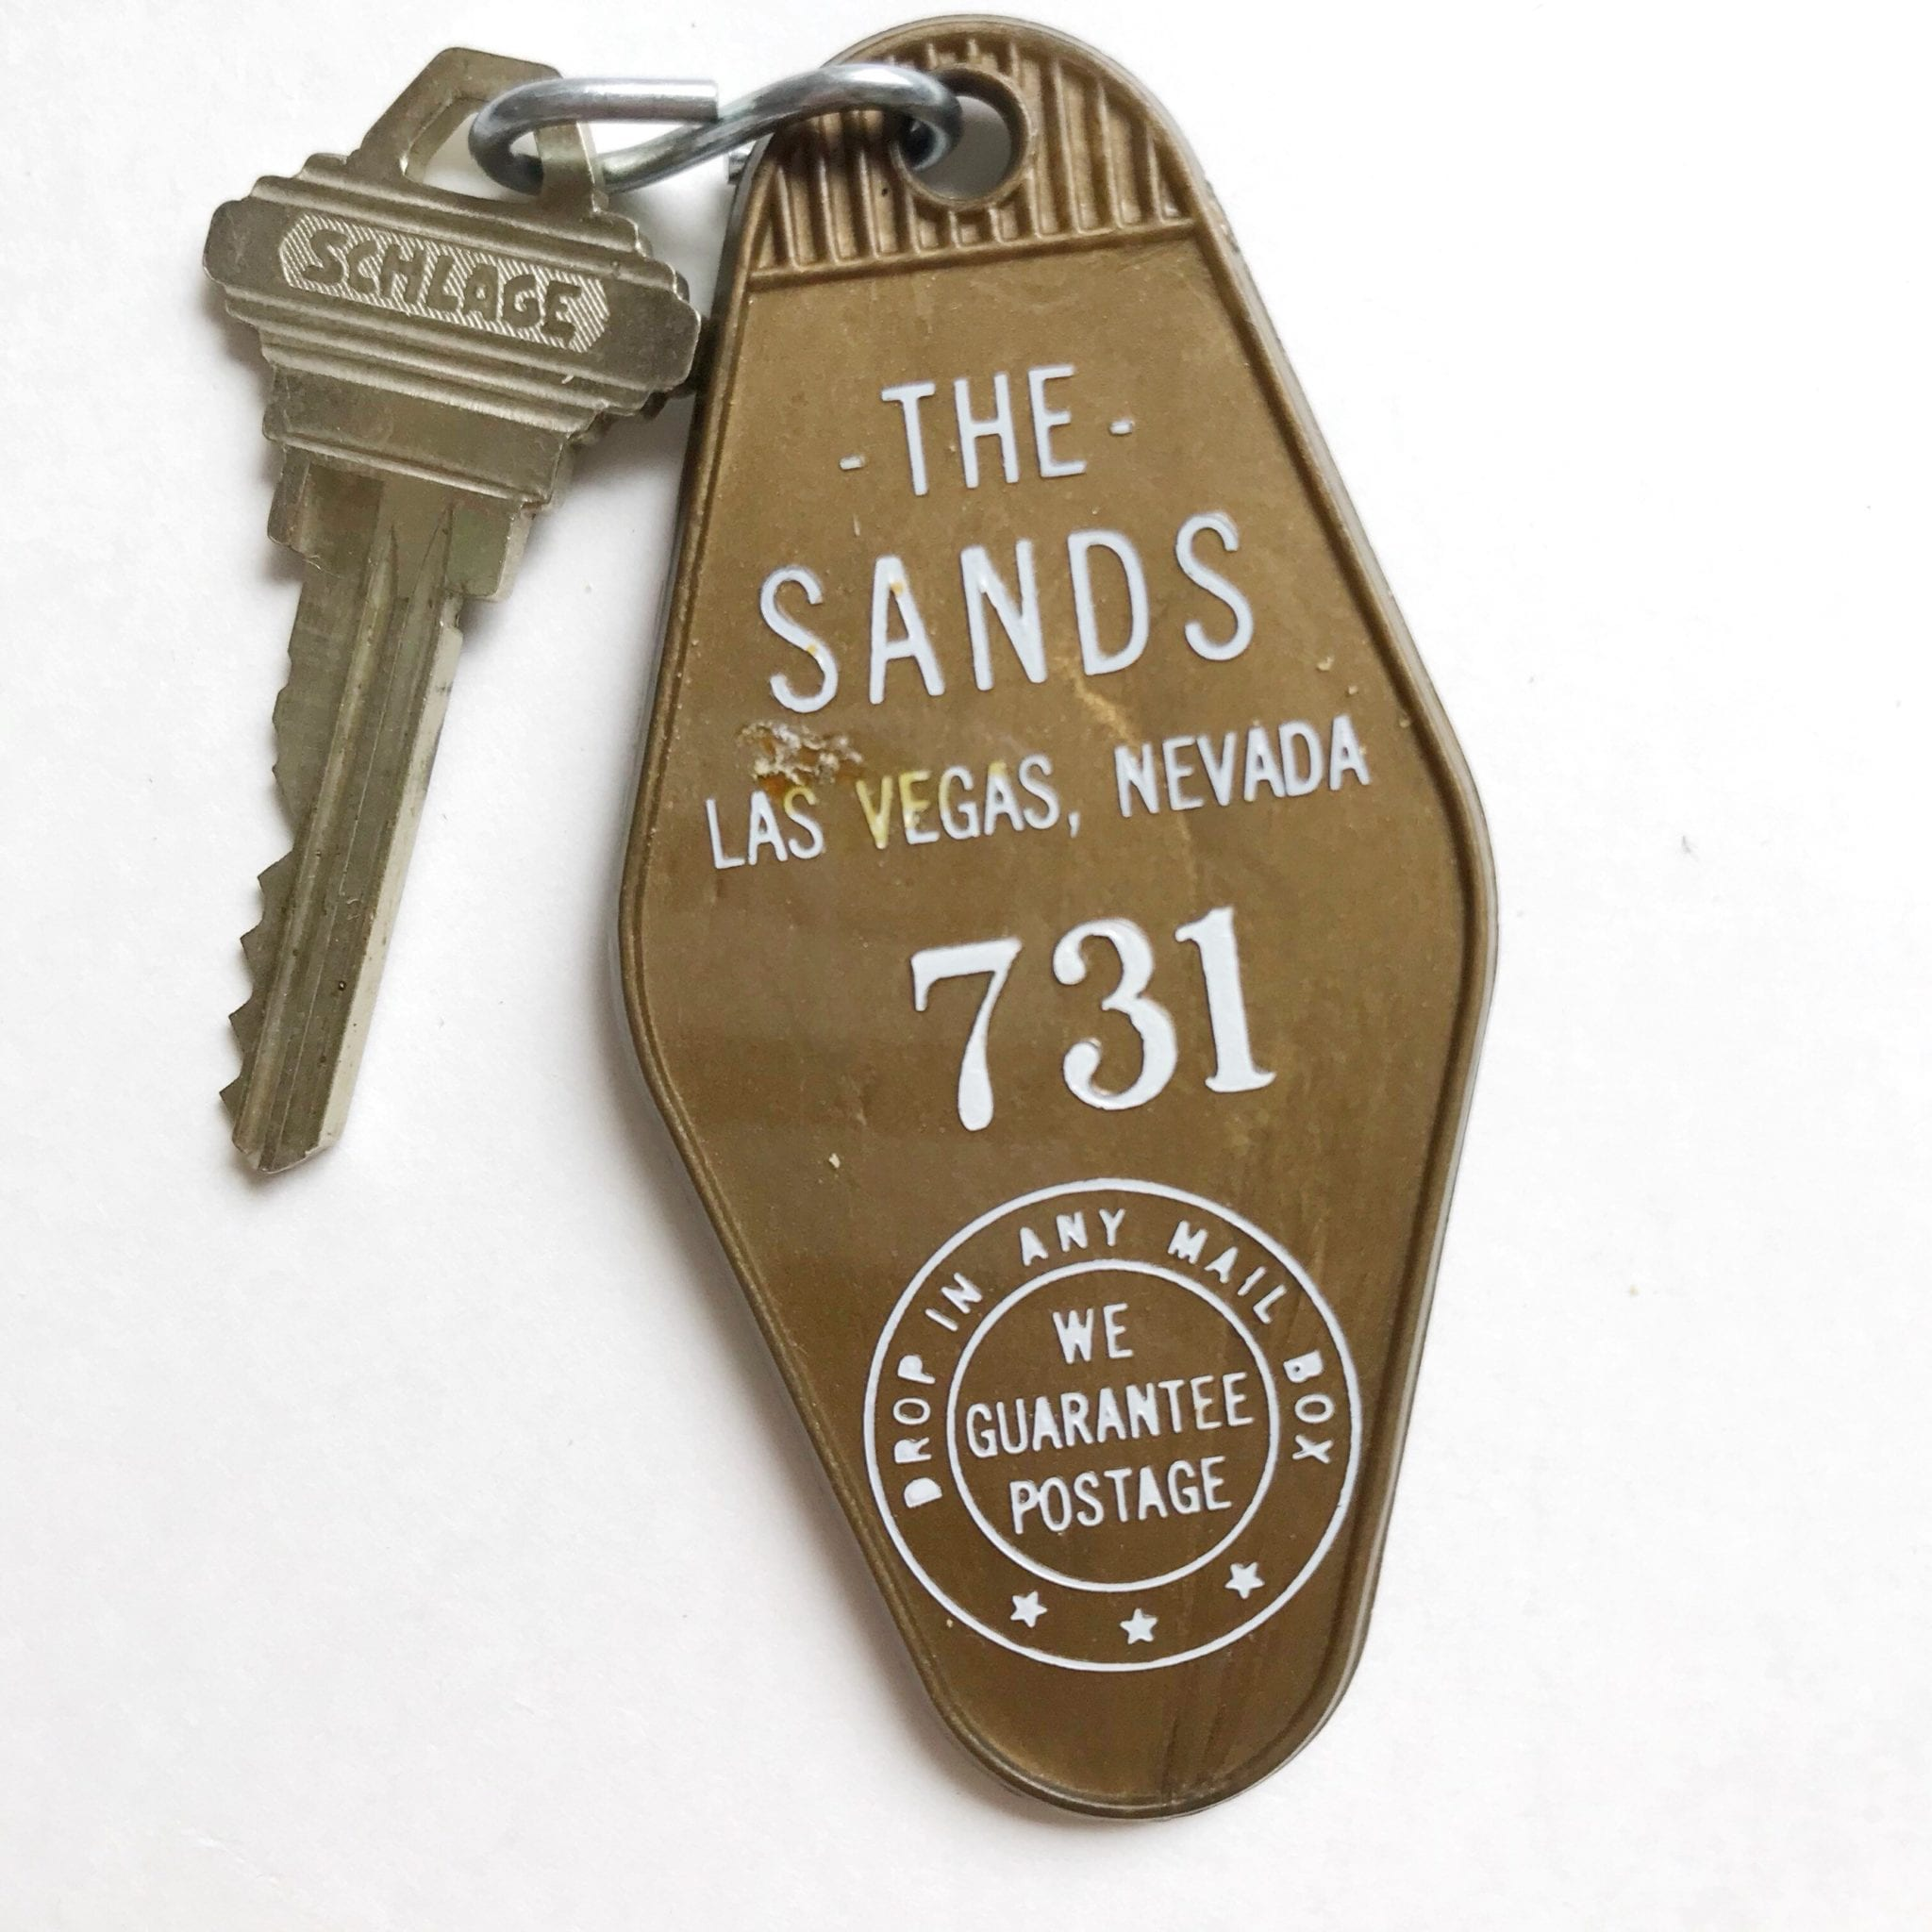 The Sands Hotel Las Vegas Gold Key Chain